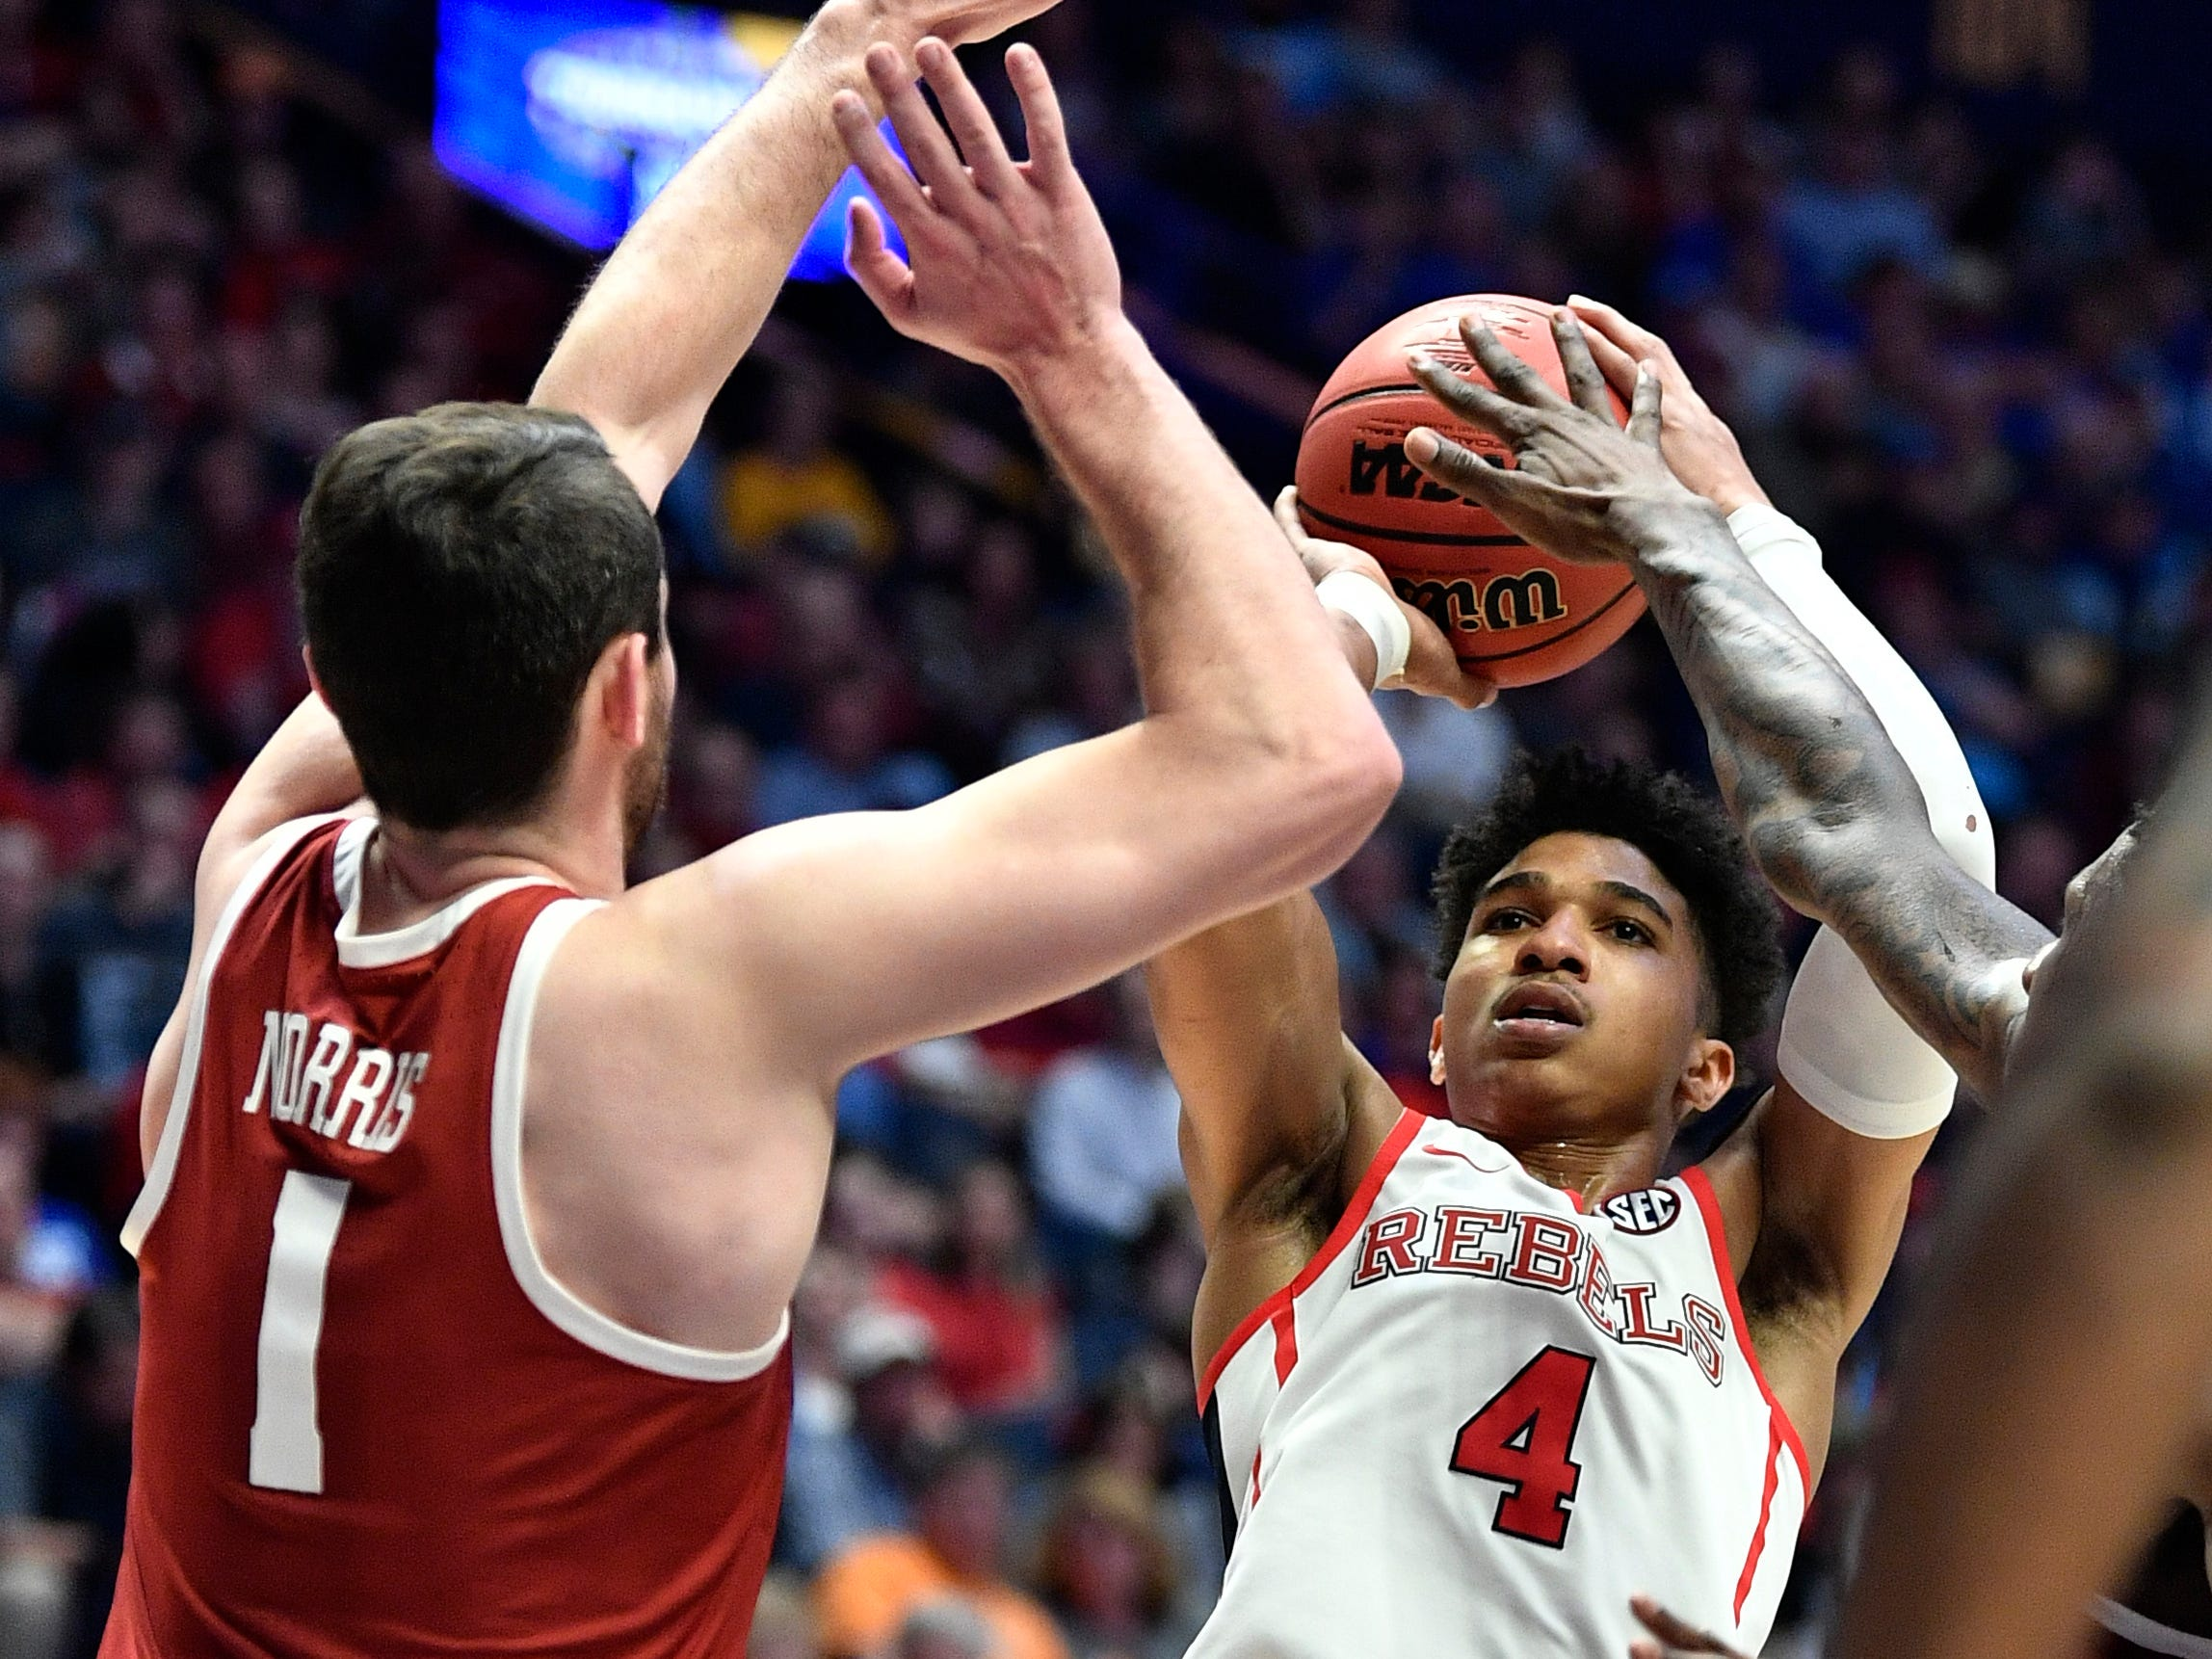 Ole Miss guard Breein Tyree (4) shoots defeded by Alabama guard/forward Riley Norris (1) during the second half of the SEC Men's Basketball Tournament game at Bridgestone Arena in Nashville, Tenn., Thursday, March 14, 2019.